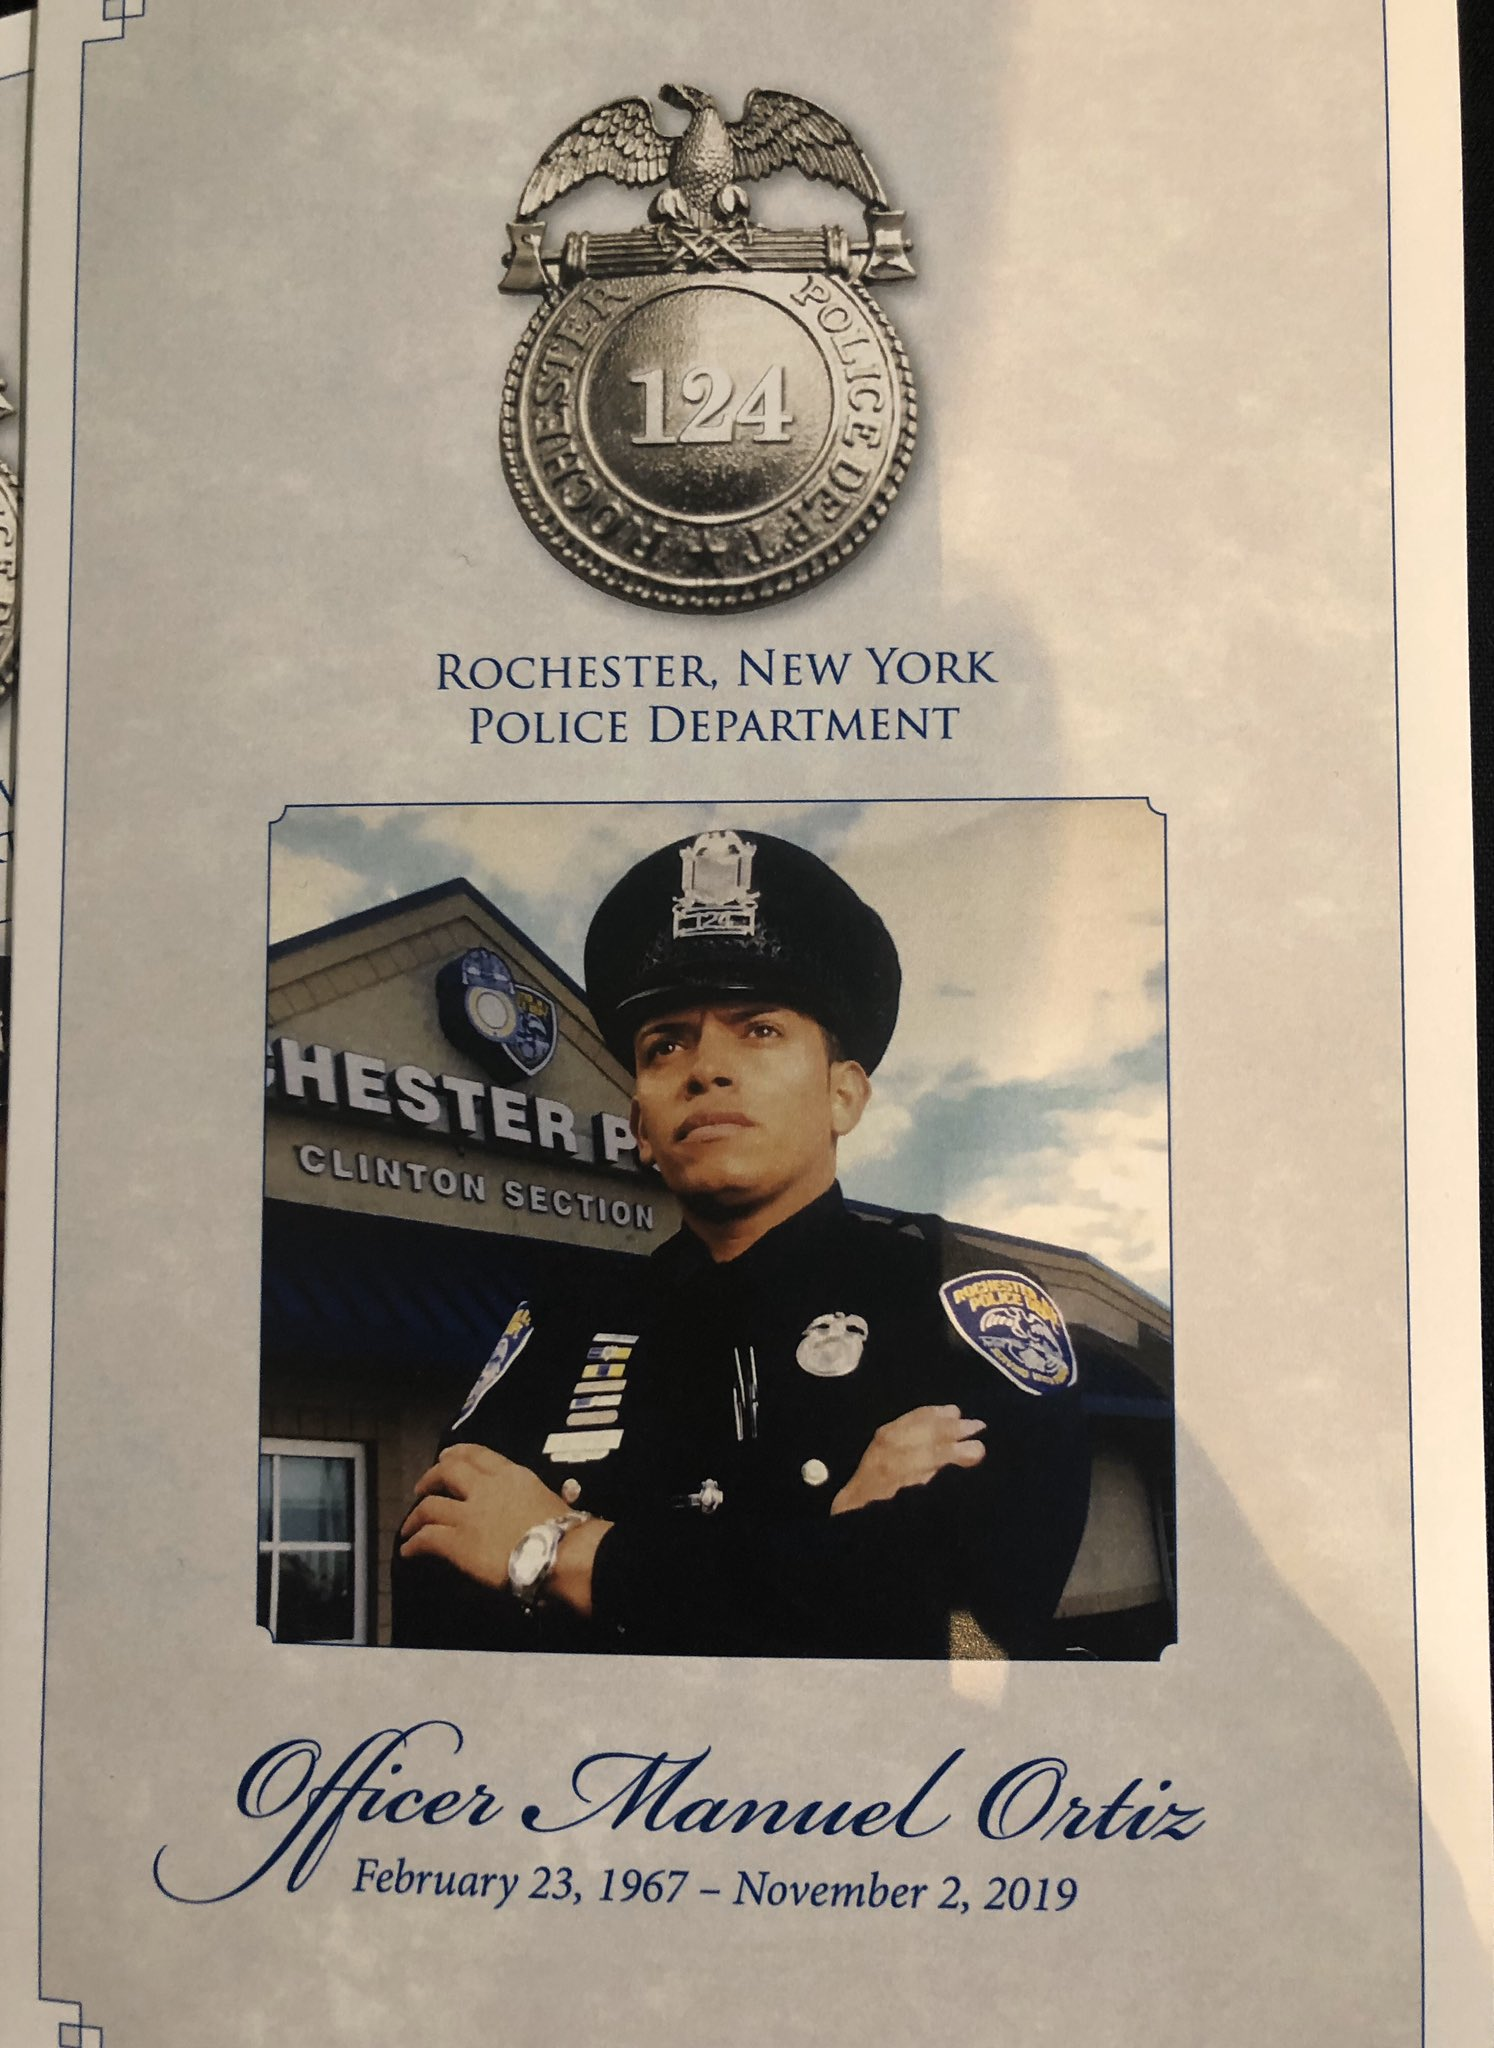 The program for the memorial service for Rochester Police Officer Manuel 'Manny' Ortiz. The ceremony was held at the Joseph A. Floreano Rochester Riverside Convention Center on Friday, November 8, 2019. (WHAM photo)